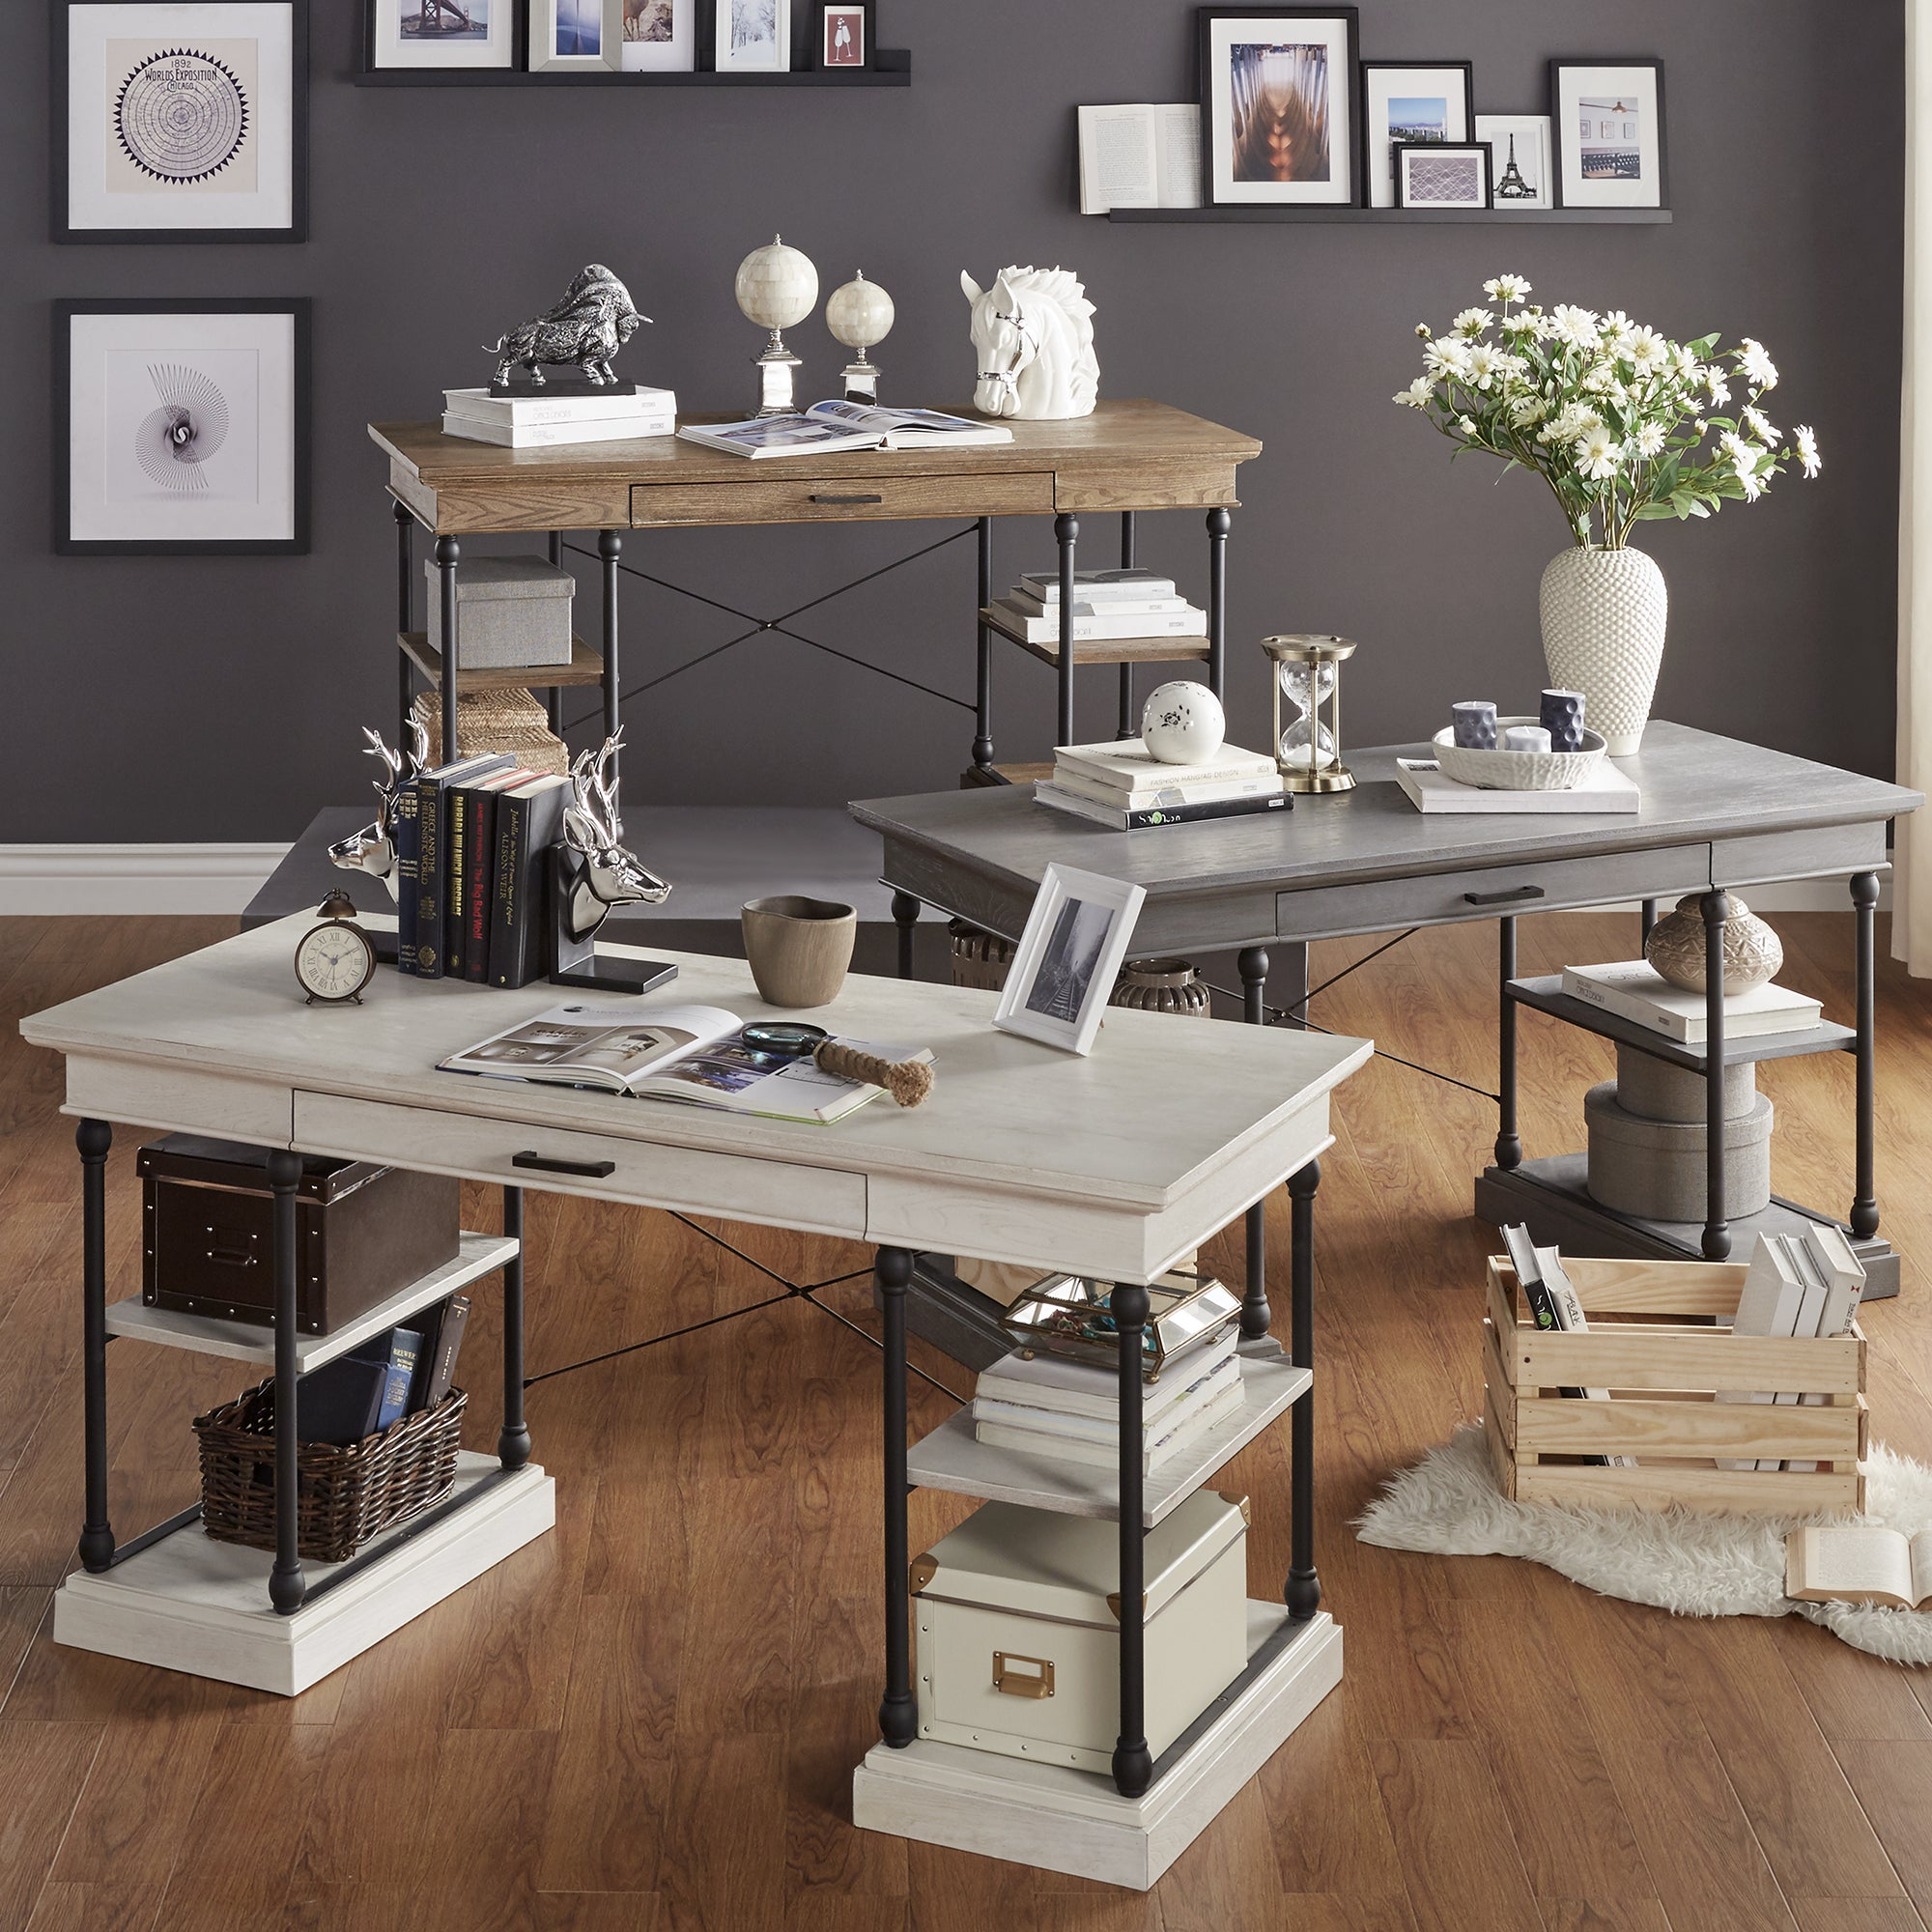 Barnstone Cornice 1 Drawer Storage Writing Desk By Inspire Q Free Shipping Today 11669566